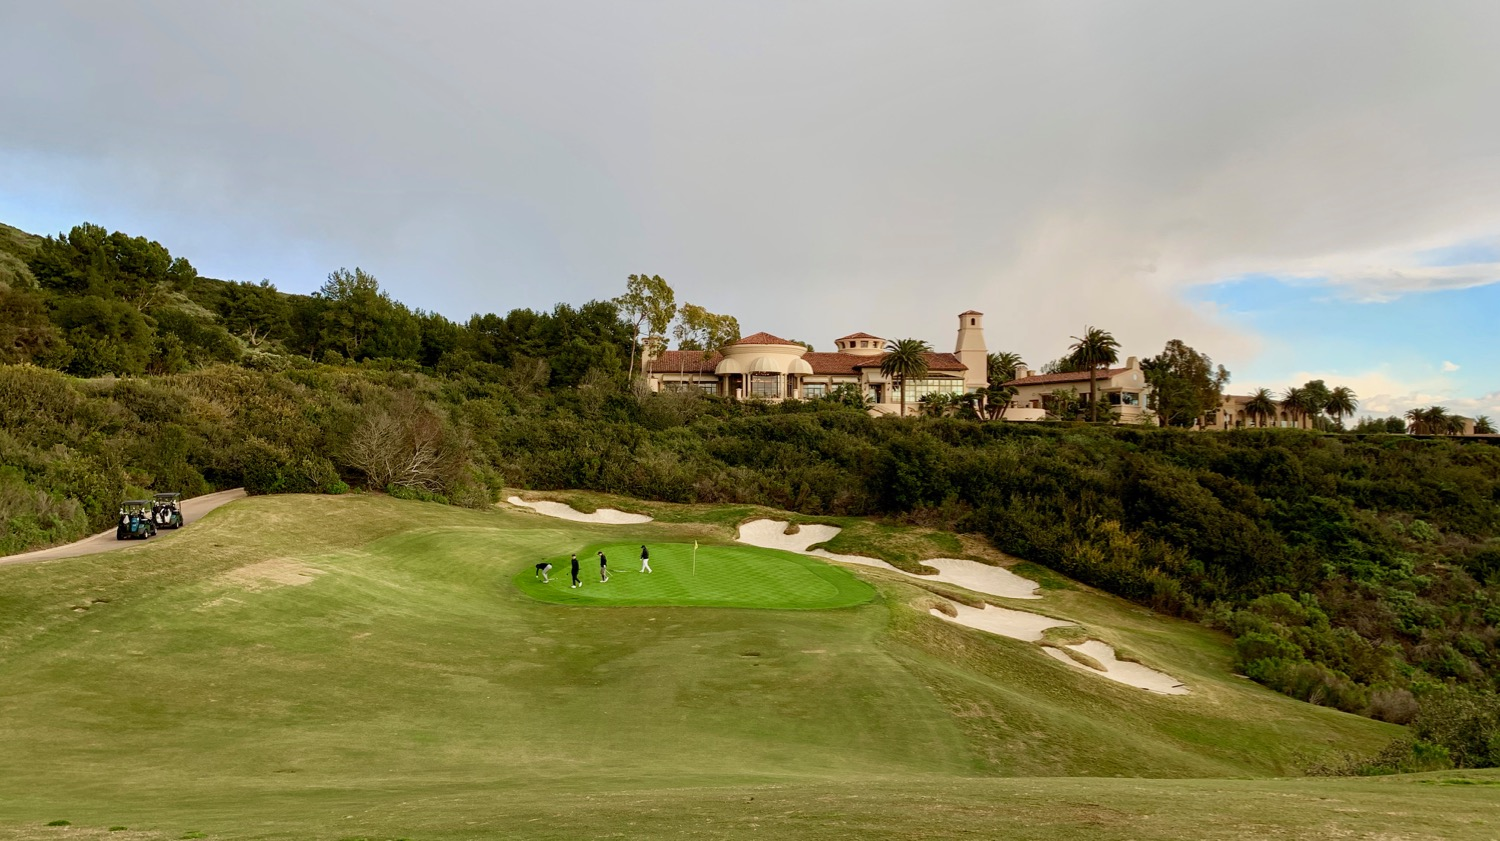 Pelican Hill GC- North Course- hole 18